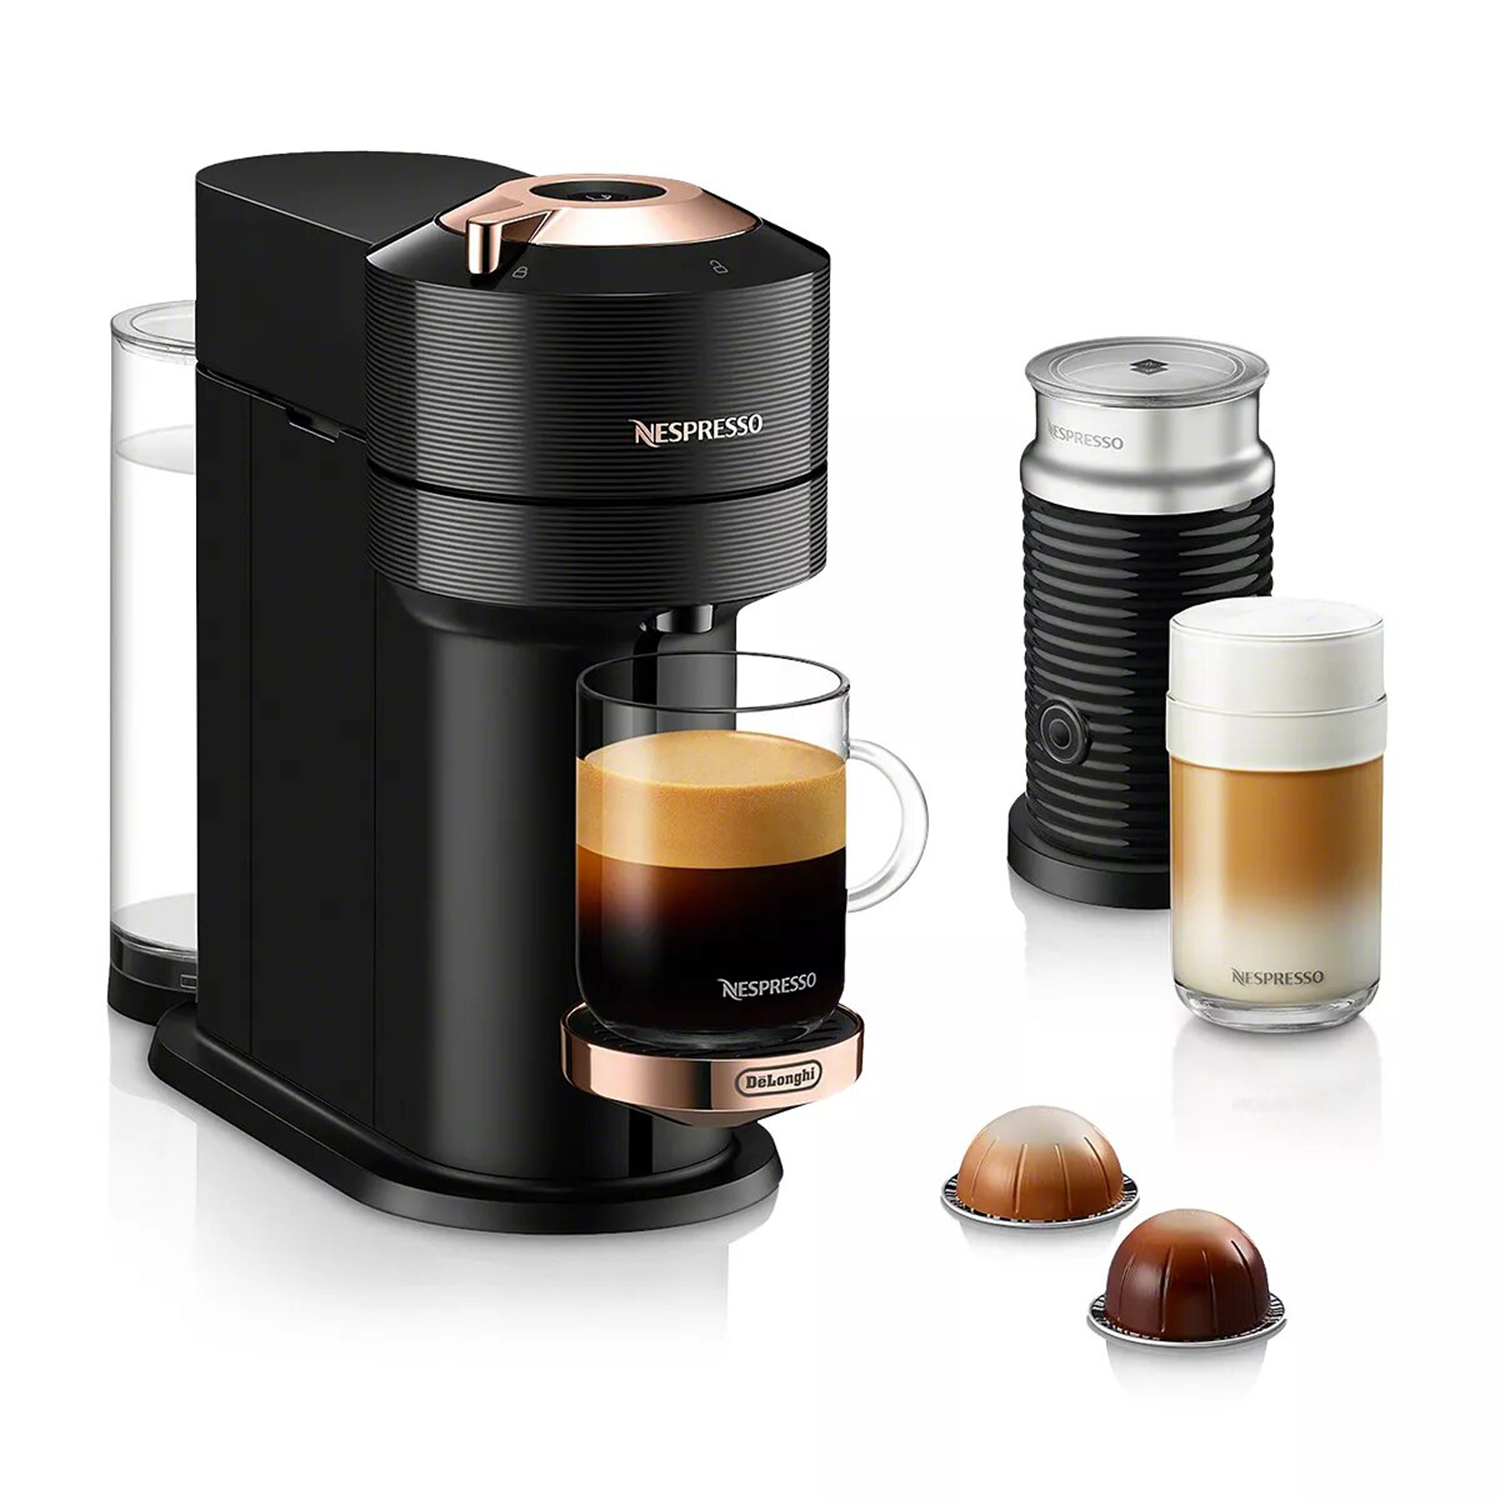 Nespresso Vertuo Next Premium Coffee and Espresso Maker by DeLonghi with Aeroccino Milk Frother, Black Rose Gold